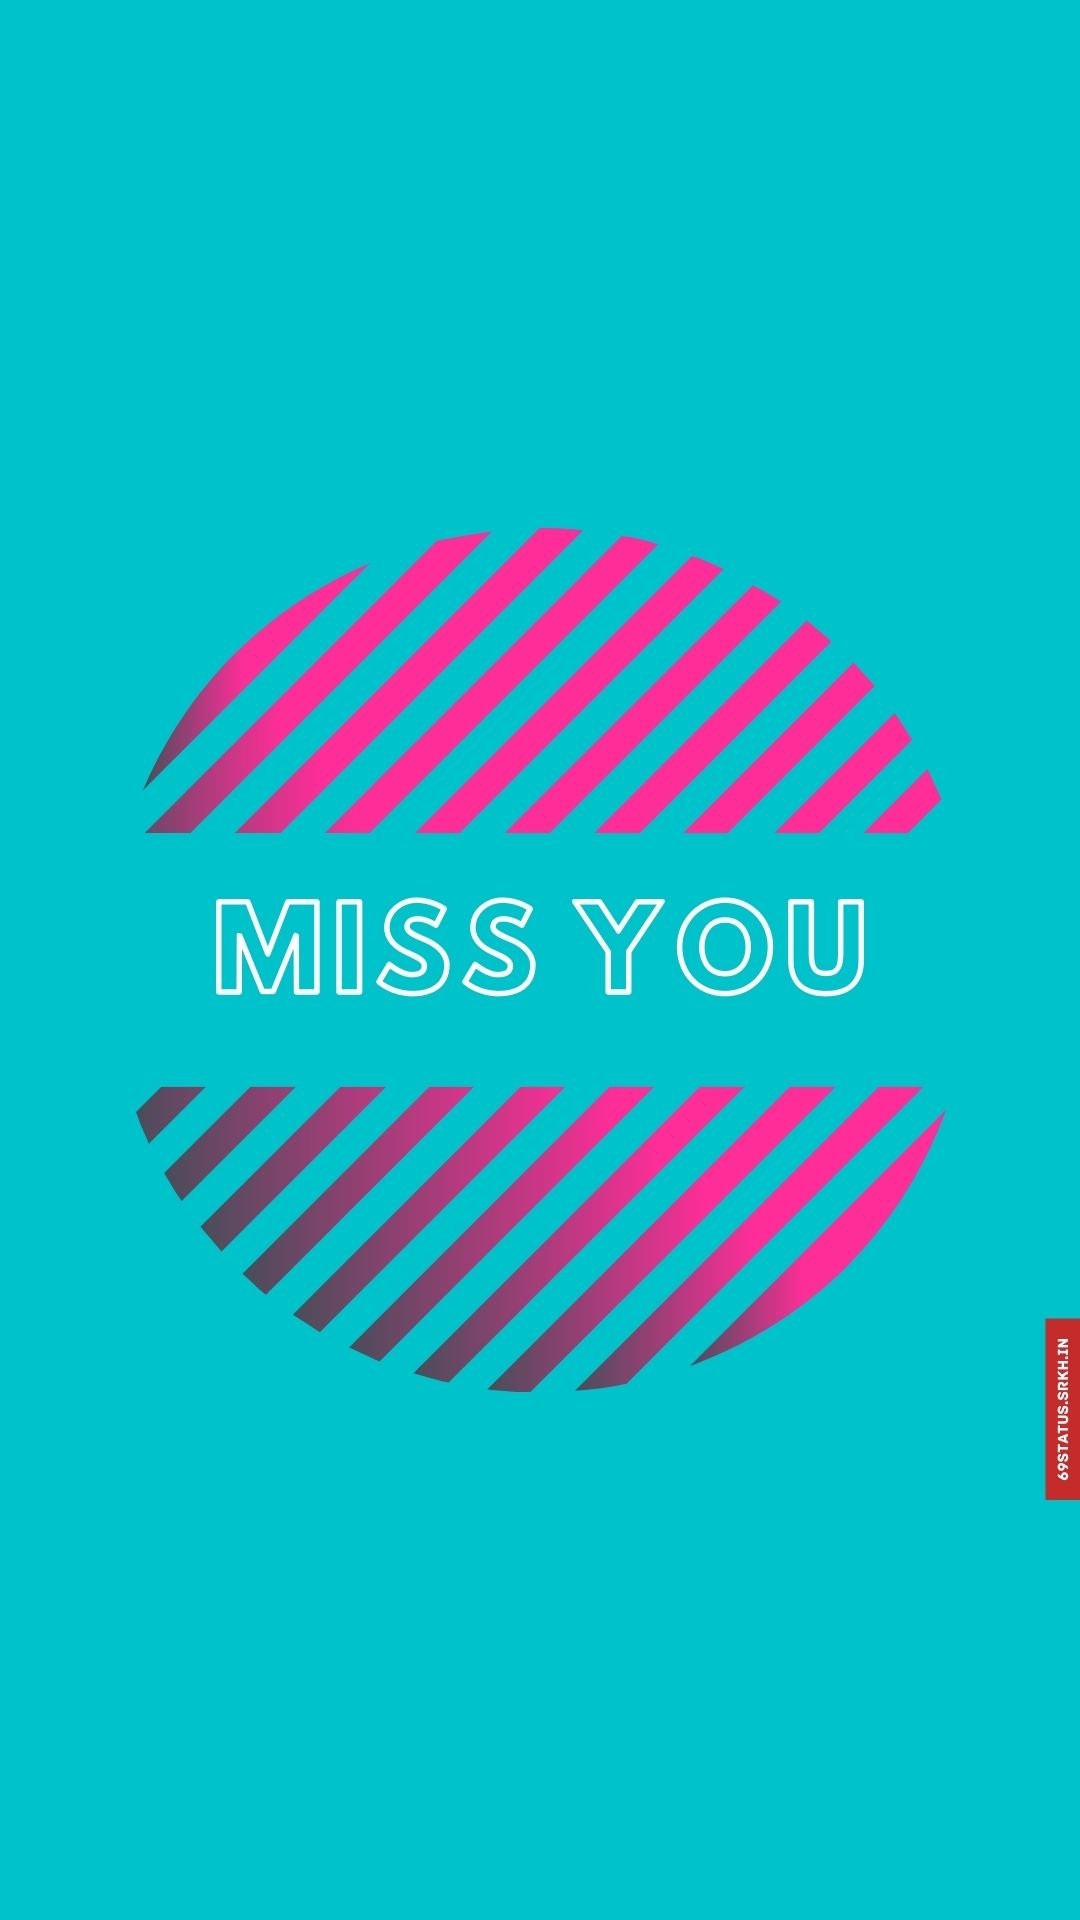 Miss you images wallpaper free download full HD free download.